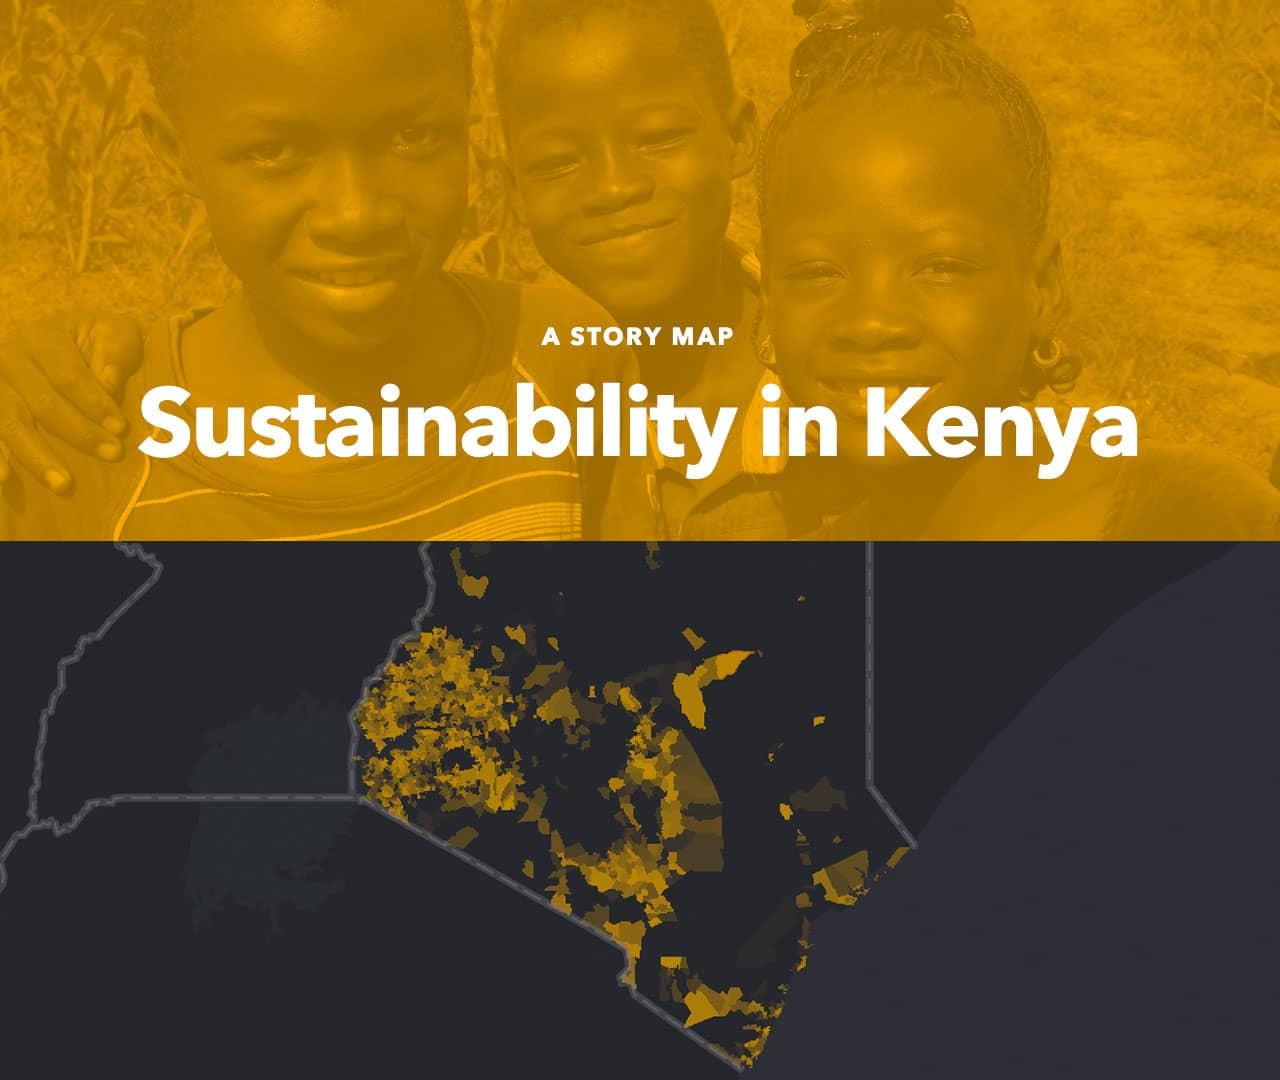 Sustainability in Kenya storymap